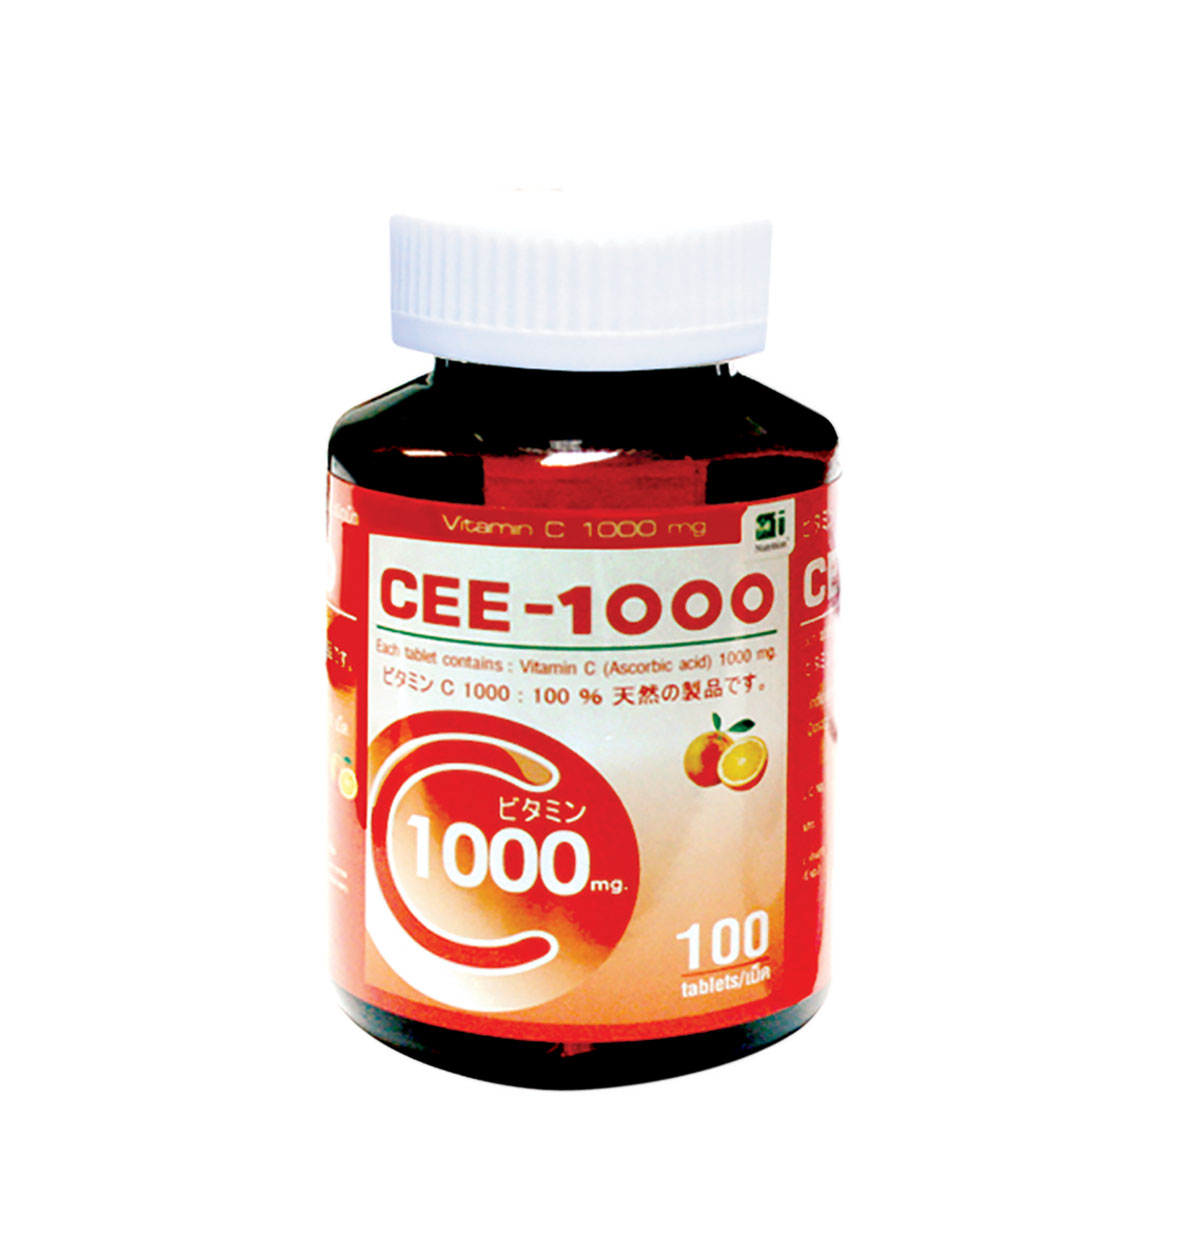 CEE-1000 Vitamin C 1000 mg., 100 Tablets